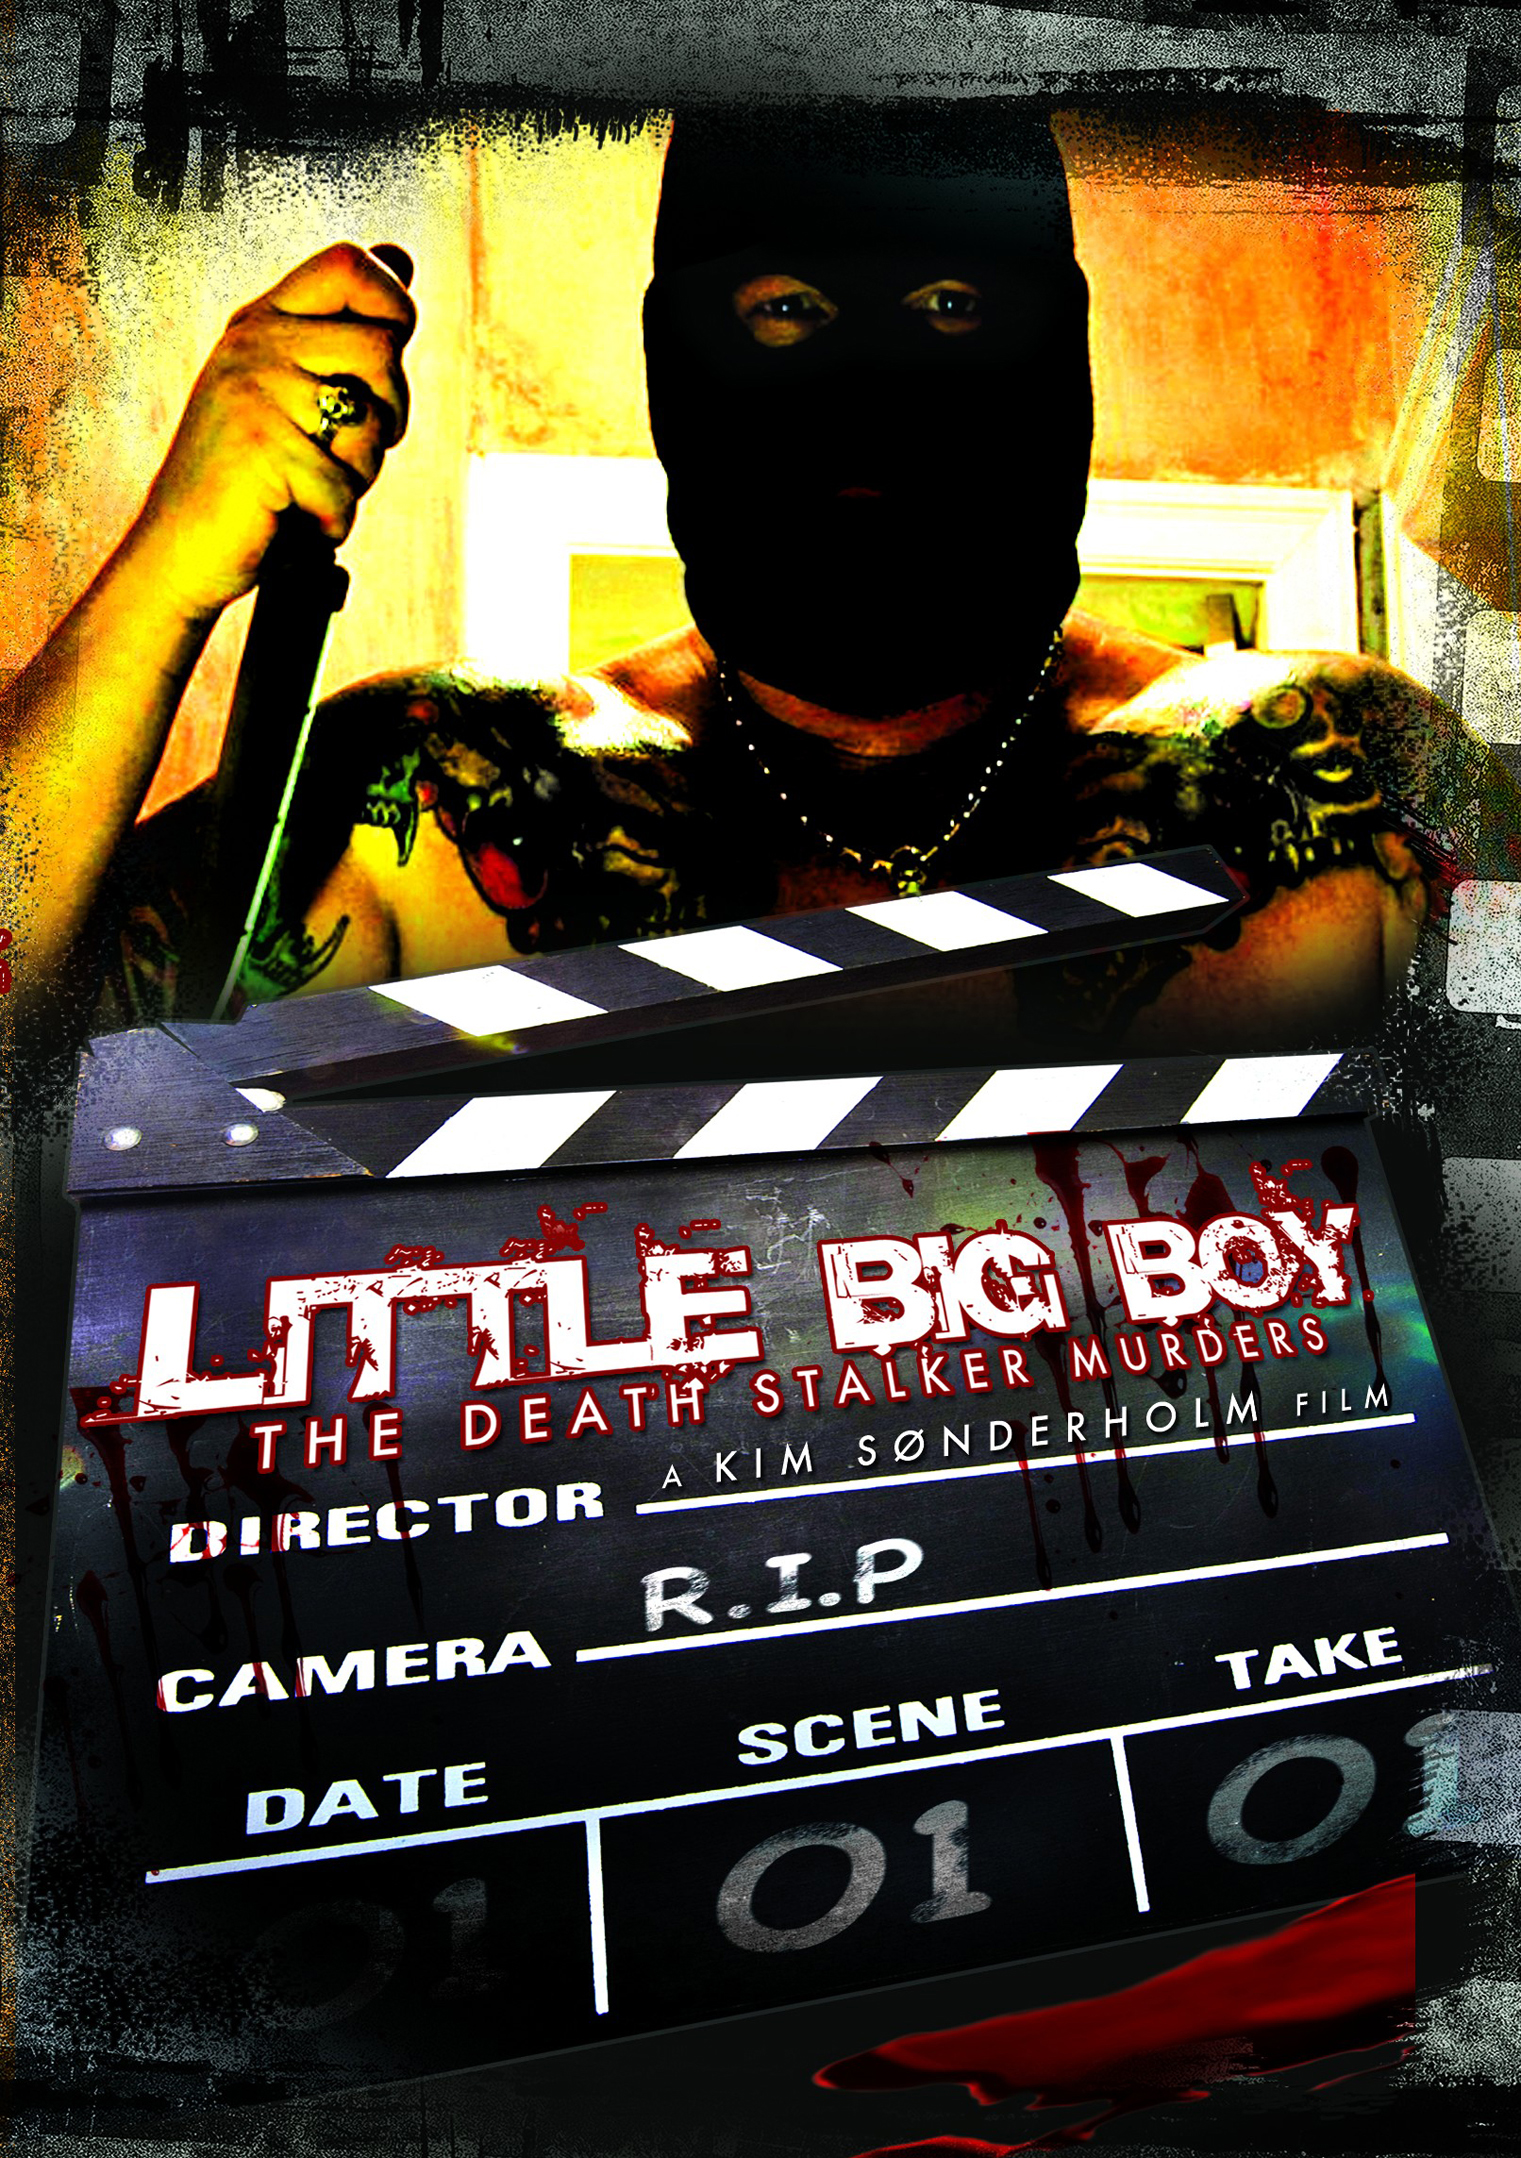 Little Big Boy: The Death Stalker Murders